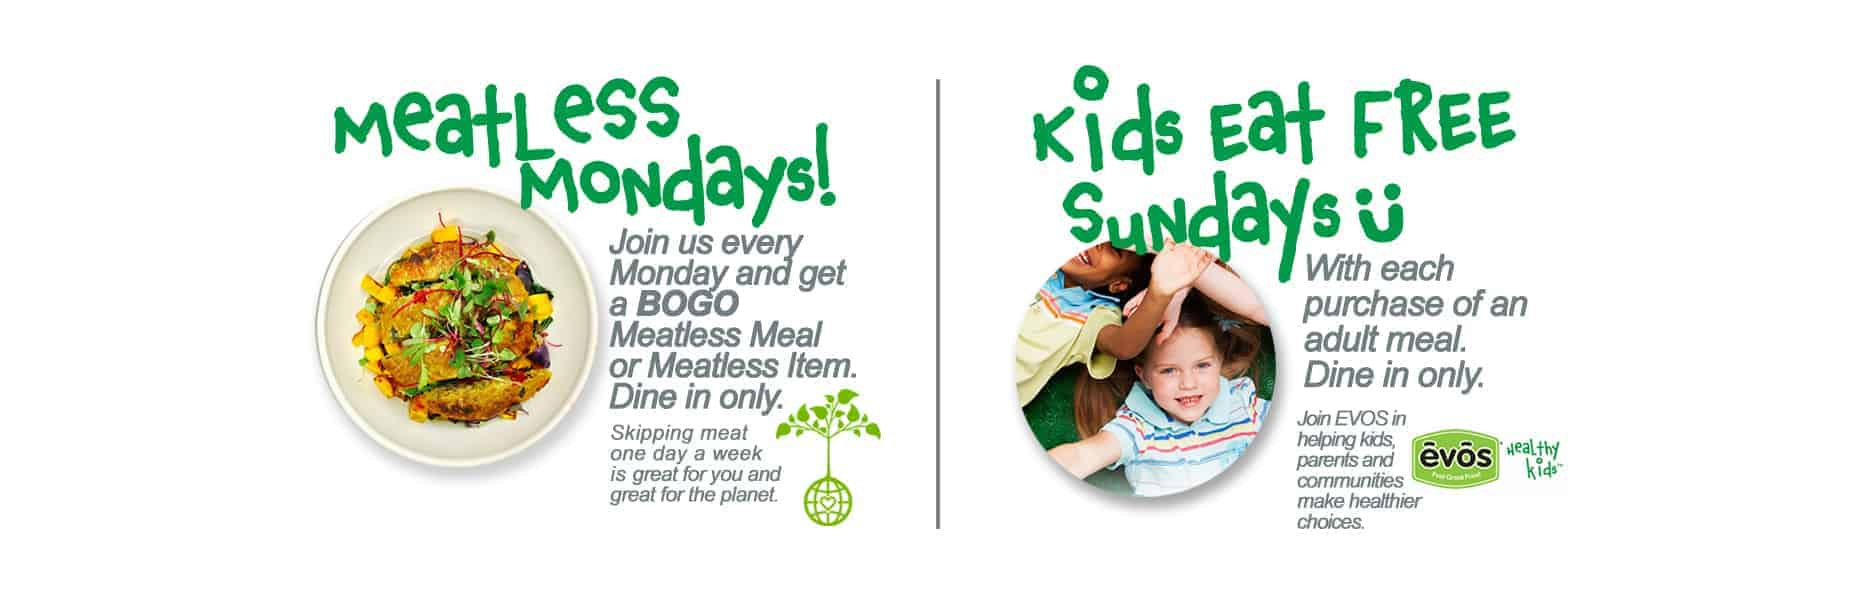 EVOS Meatless Mondays_Kids Eat Free Sundays